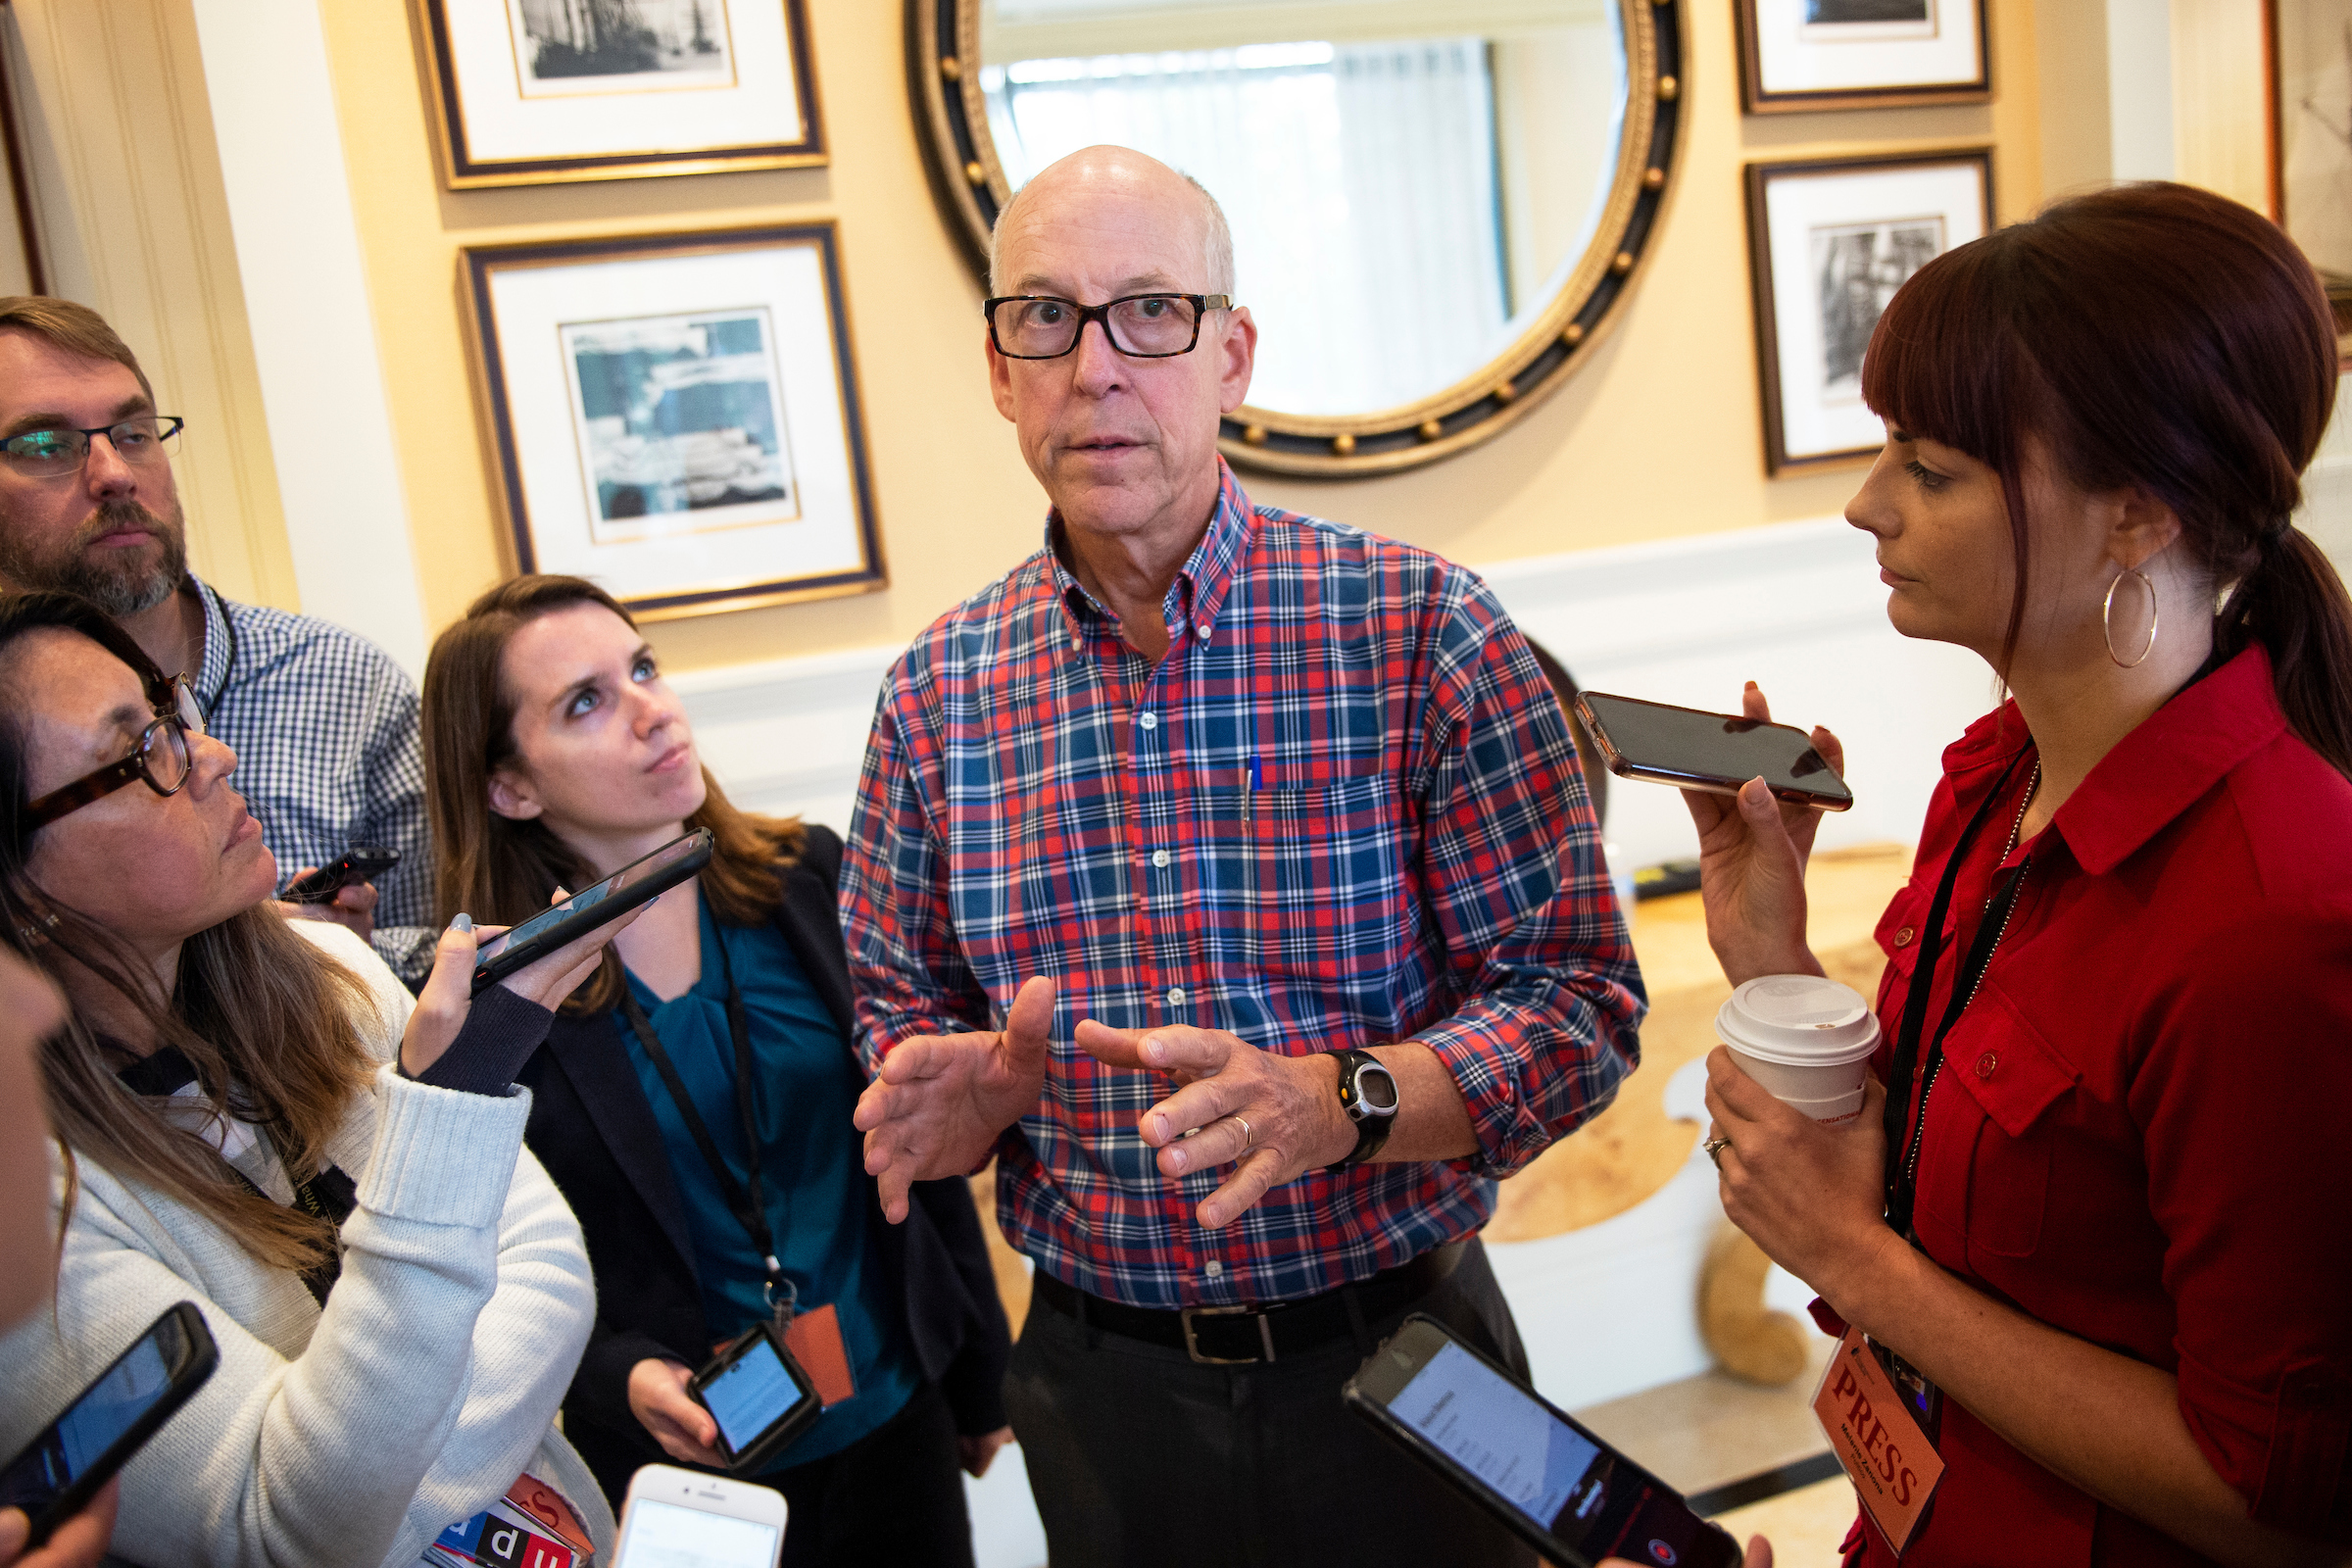 Rep. Greg Walden, R-Ore., speaks to the media at the House Republican Member Retreat in Baltimore on Friday September 13, 2019. (Photo by Caroline Brehman/CQ Roll Call)